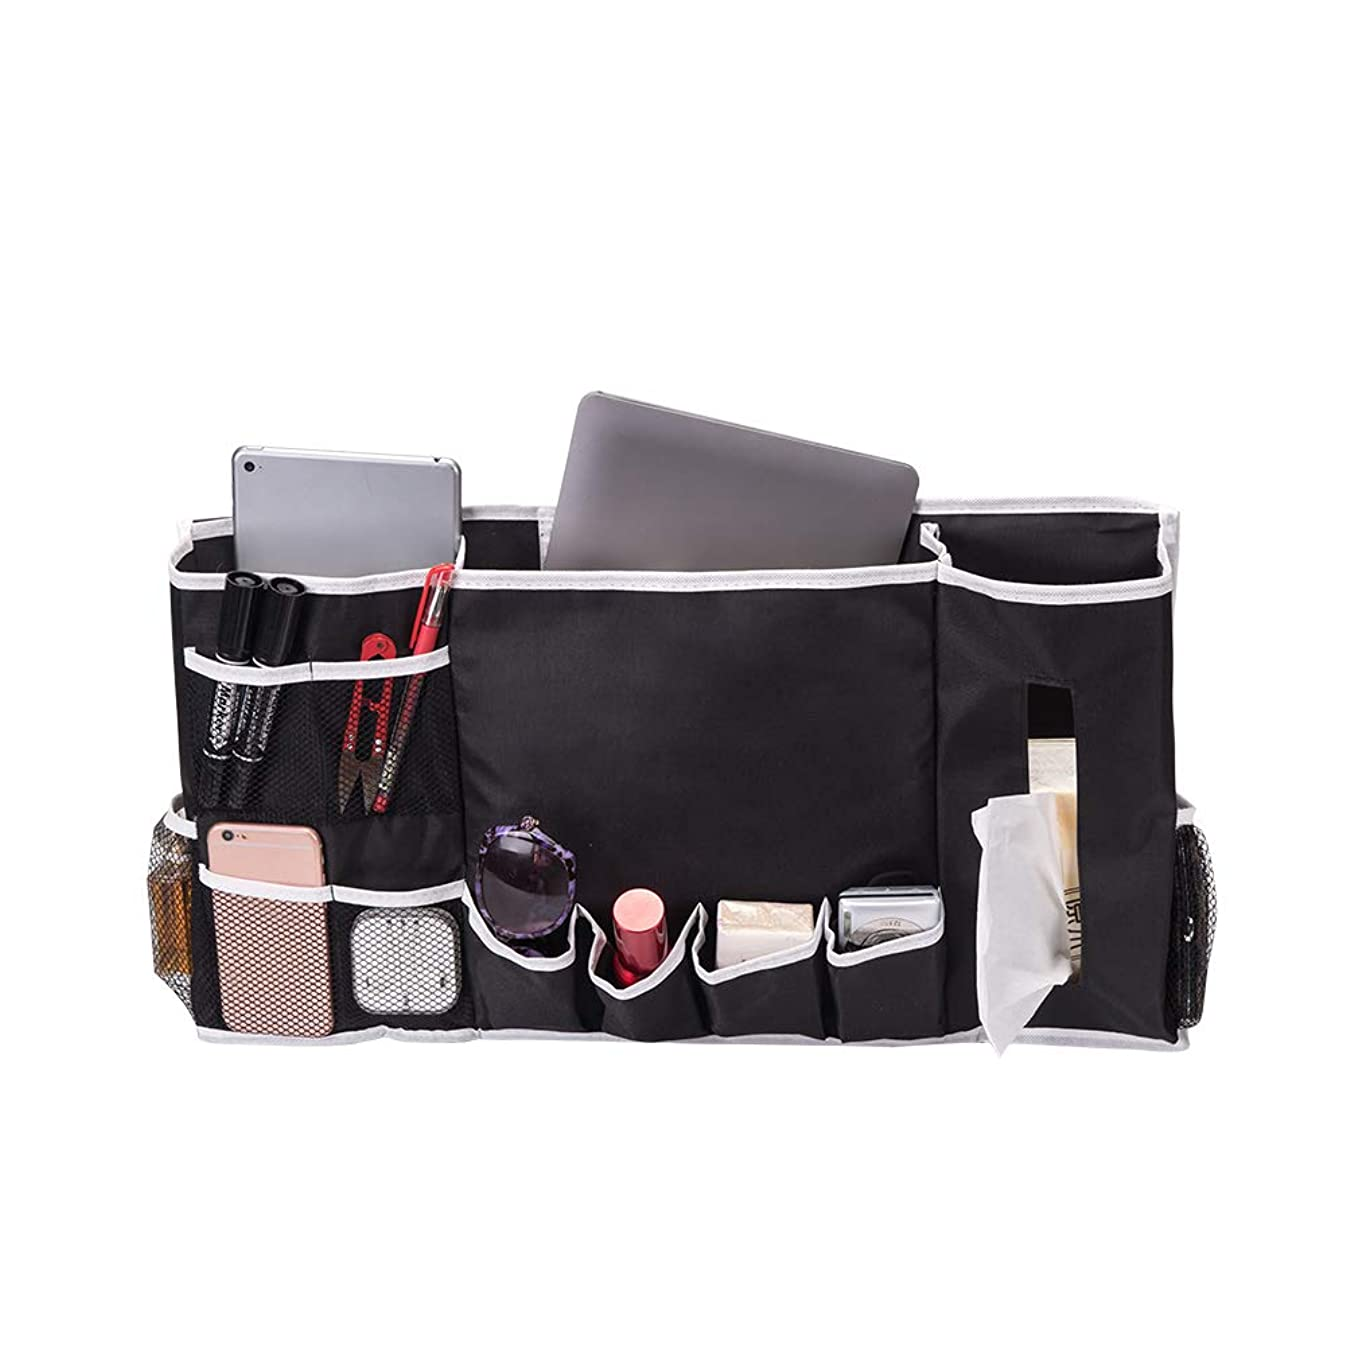 12 Pockets Bedside Caddy Organizer Hanging Storage Organizer Holds Your Laptop, Books, Tablet, Phone, Water Bottle, and More (HGJ68)